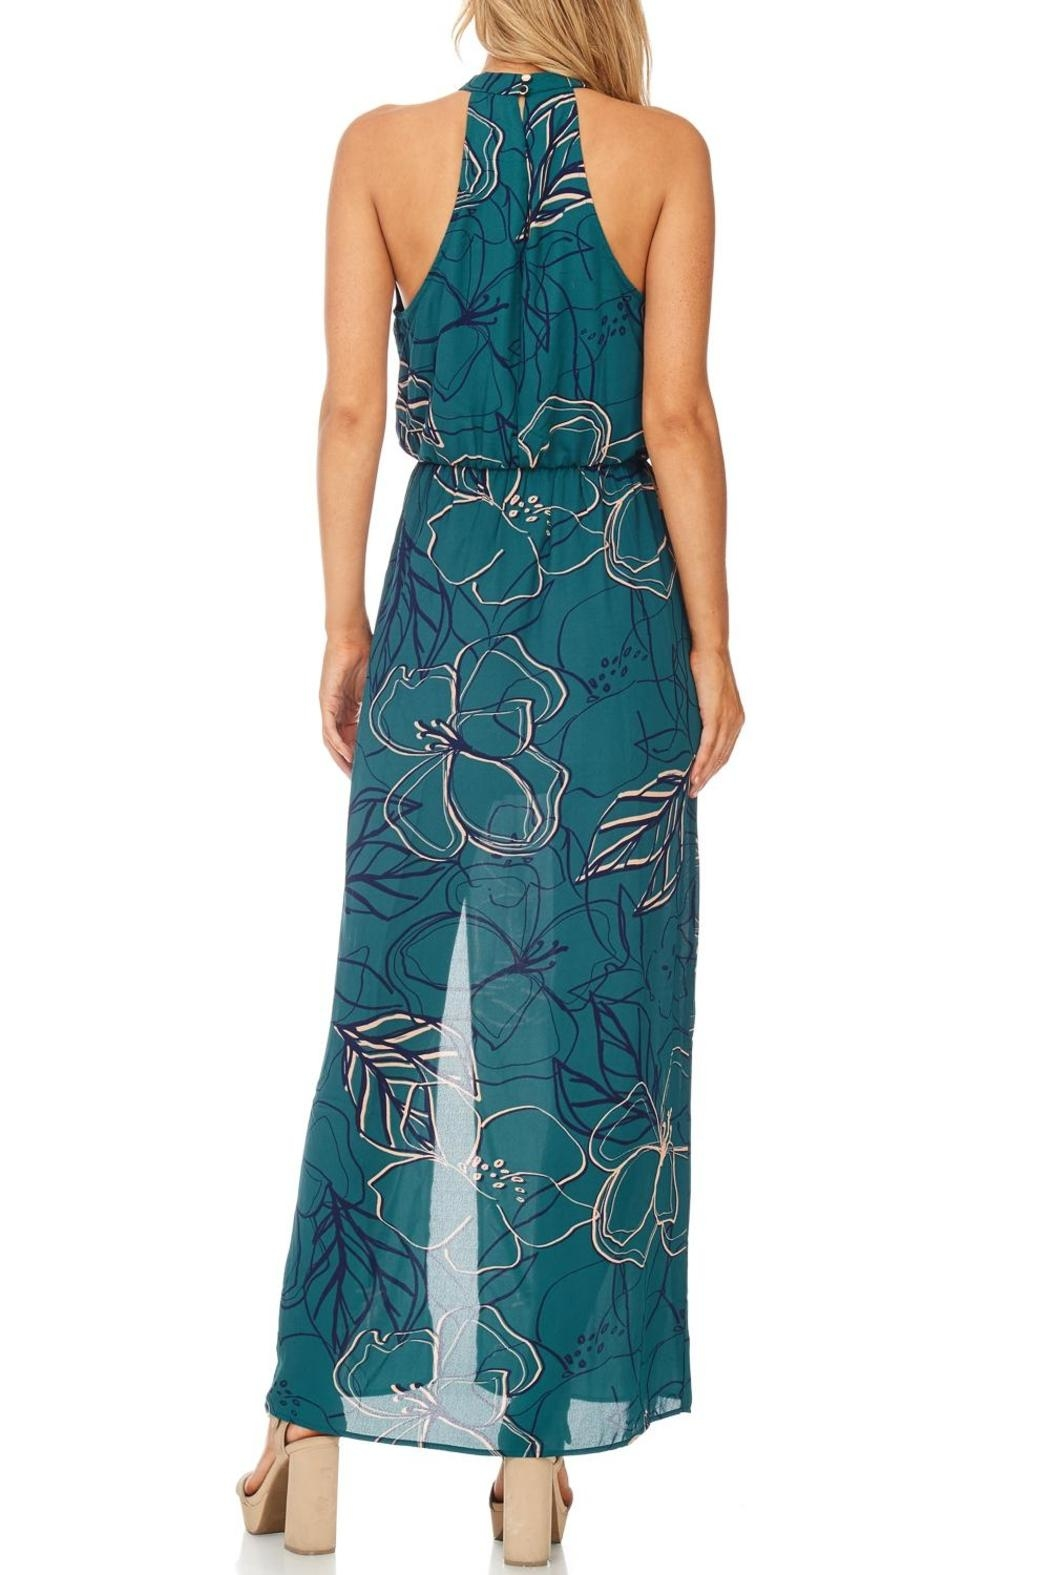 Everly Jade Maxi Halter Dress - Side Cropped Image